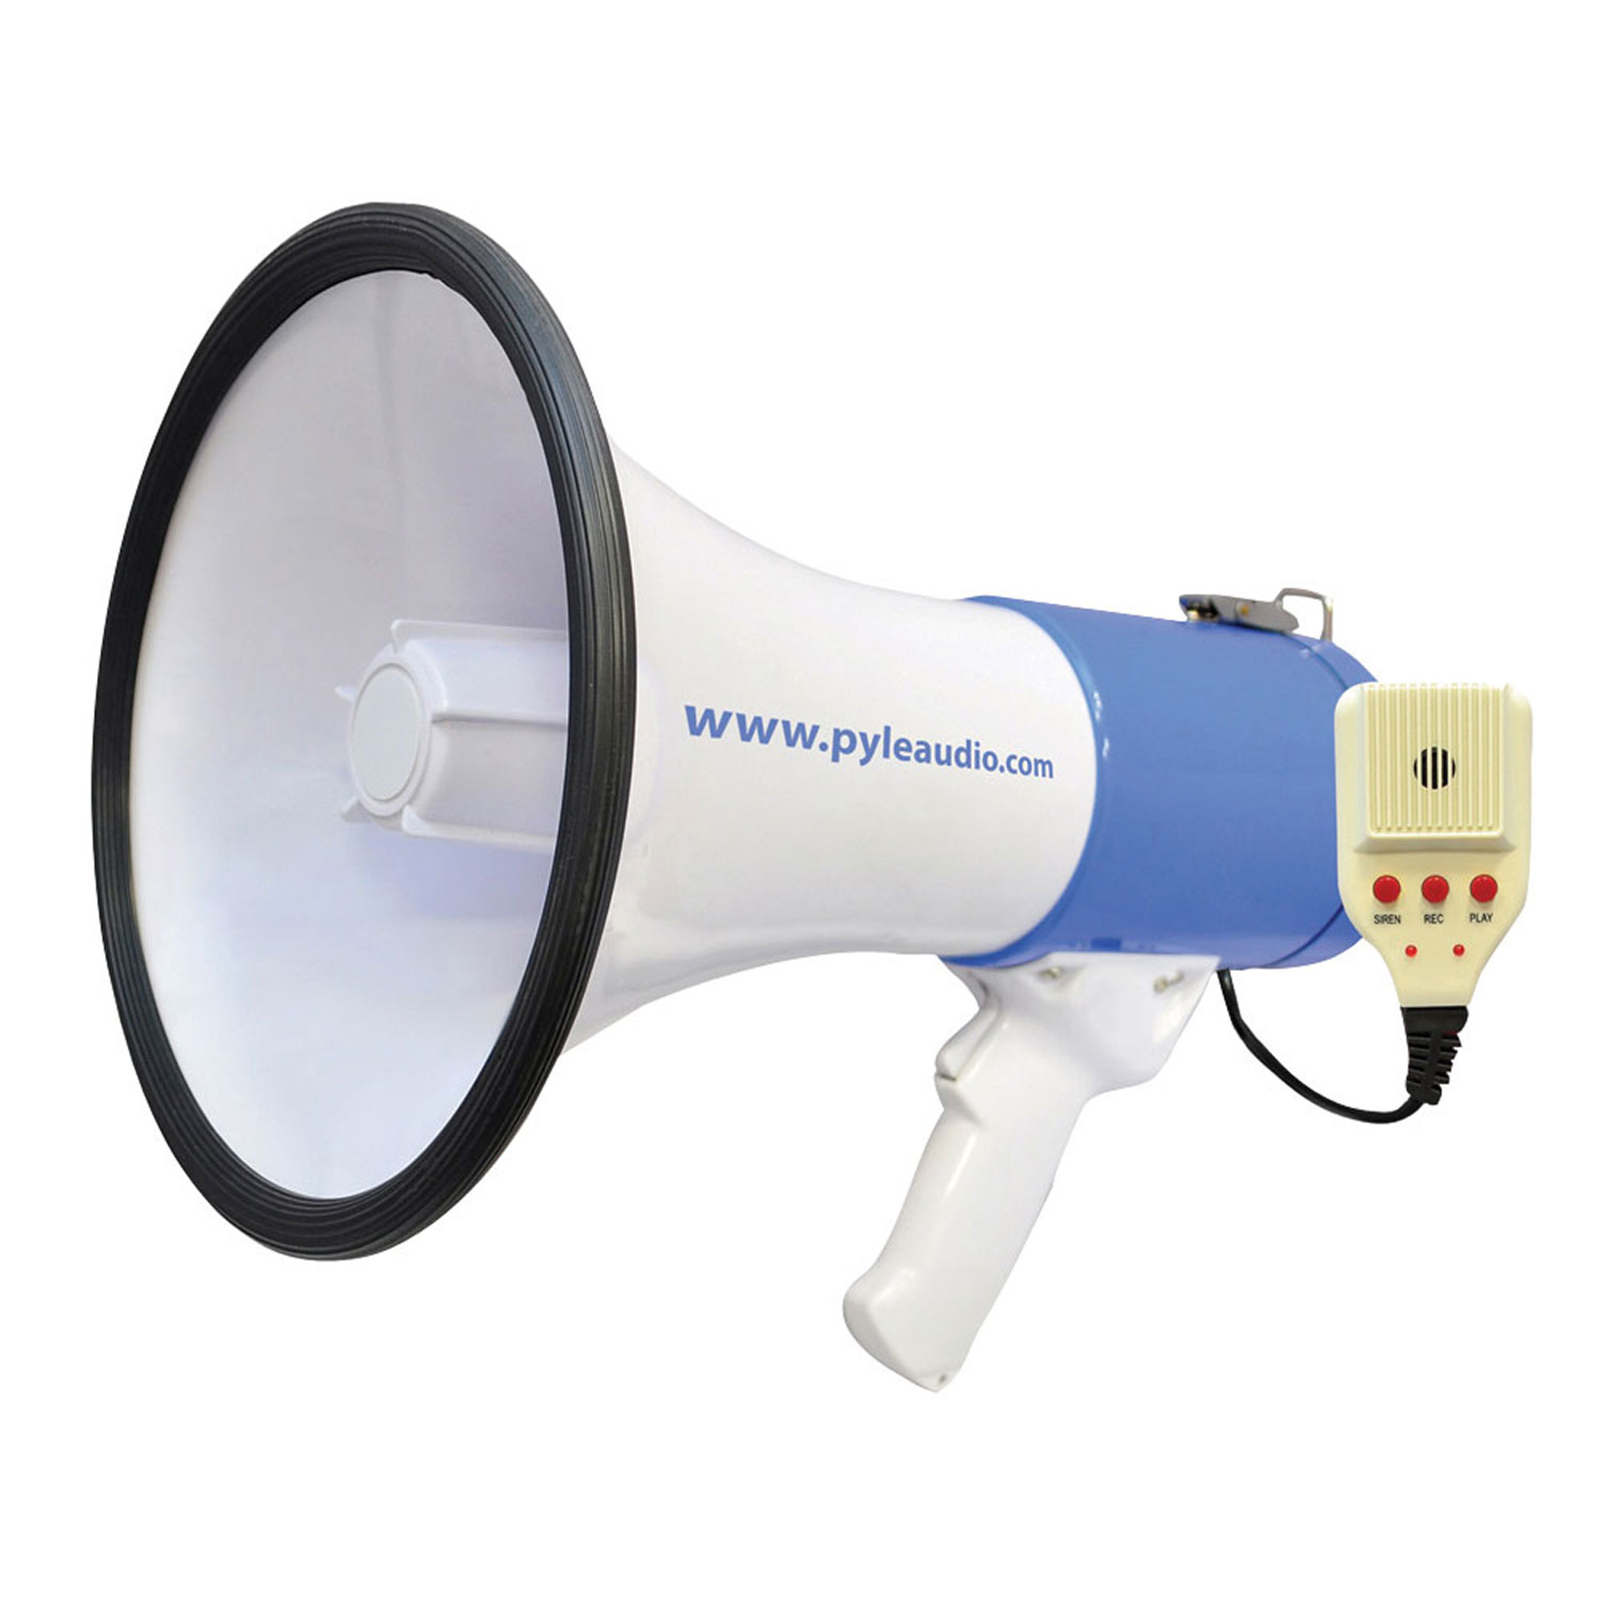 50 Watt Professional Megaphone Piezo Dynamic, Battery, Record, Siren and Talk Modes &... by Pyle